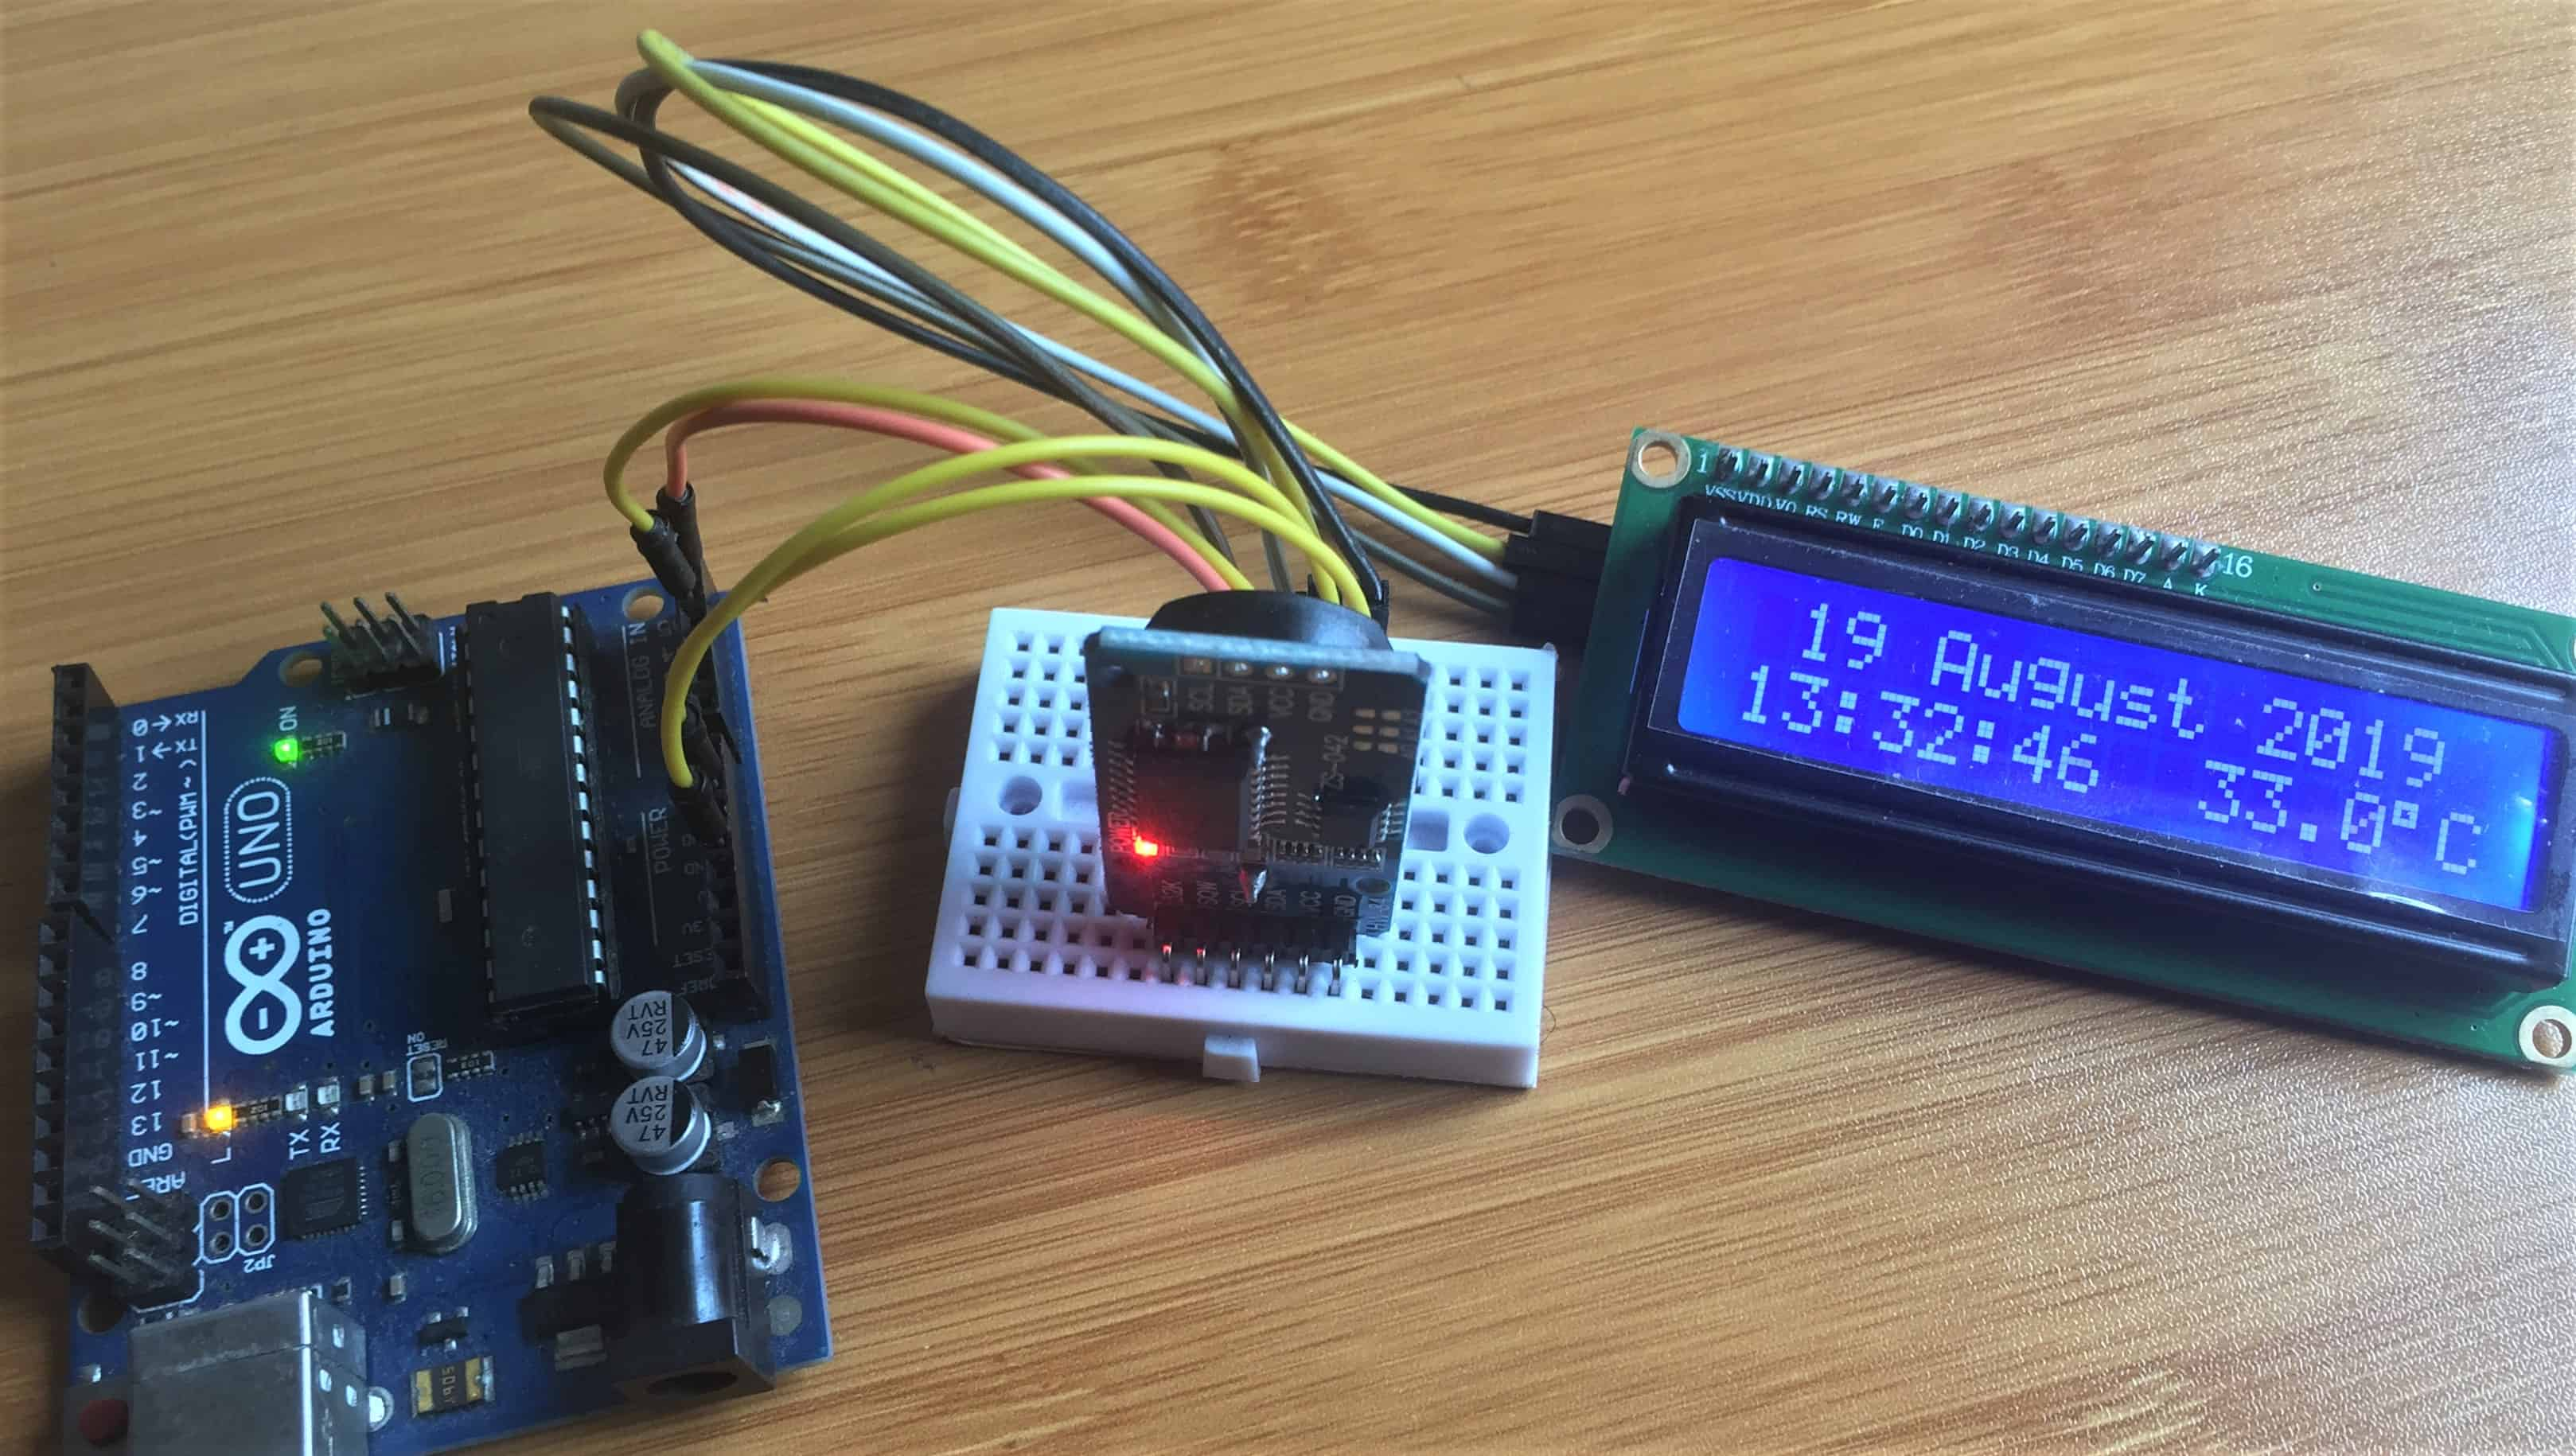 ds3231 rtc with arduino cover